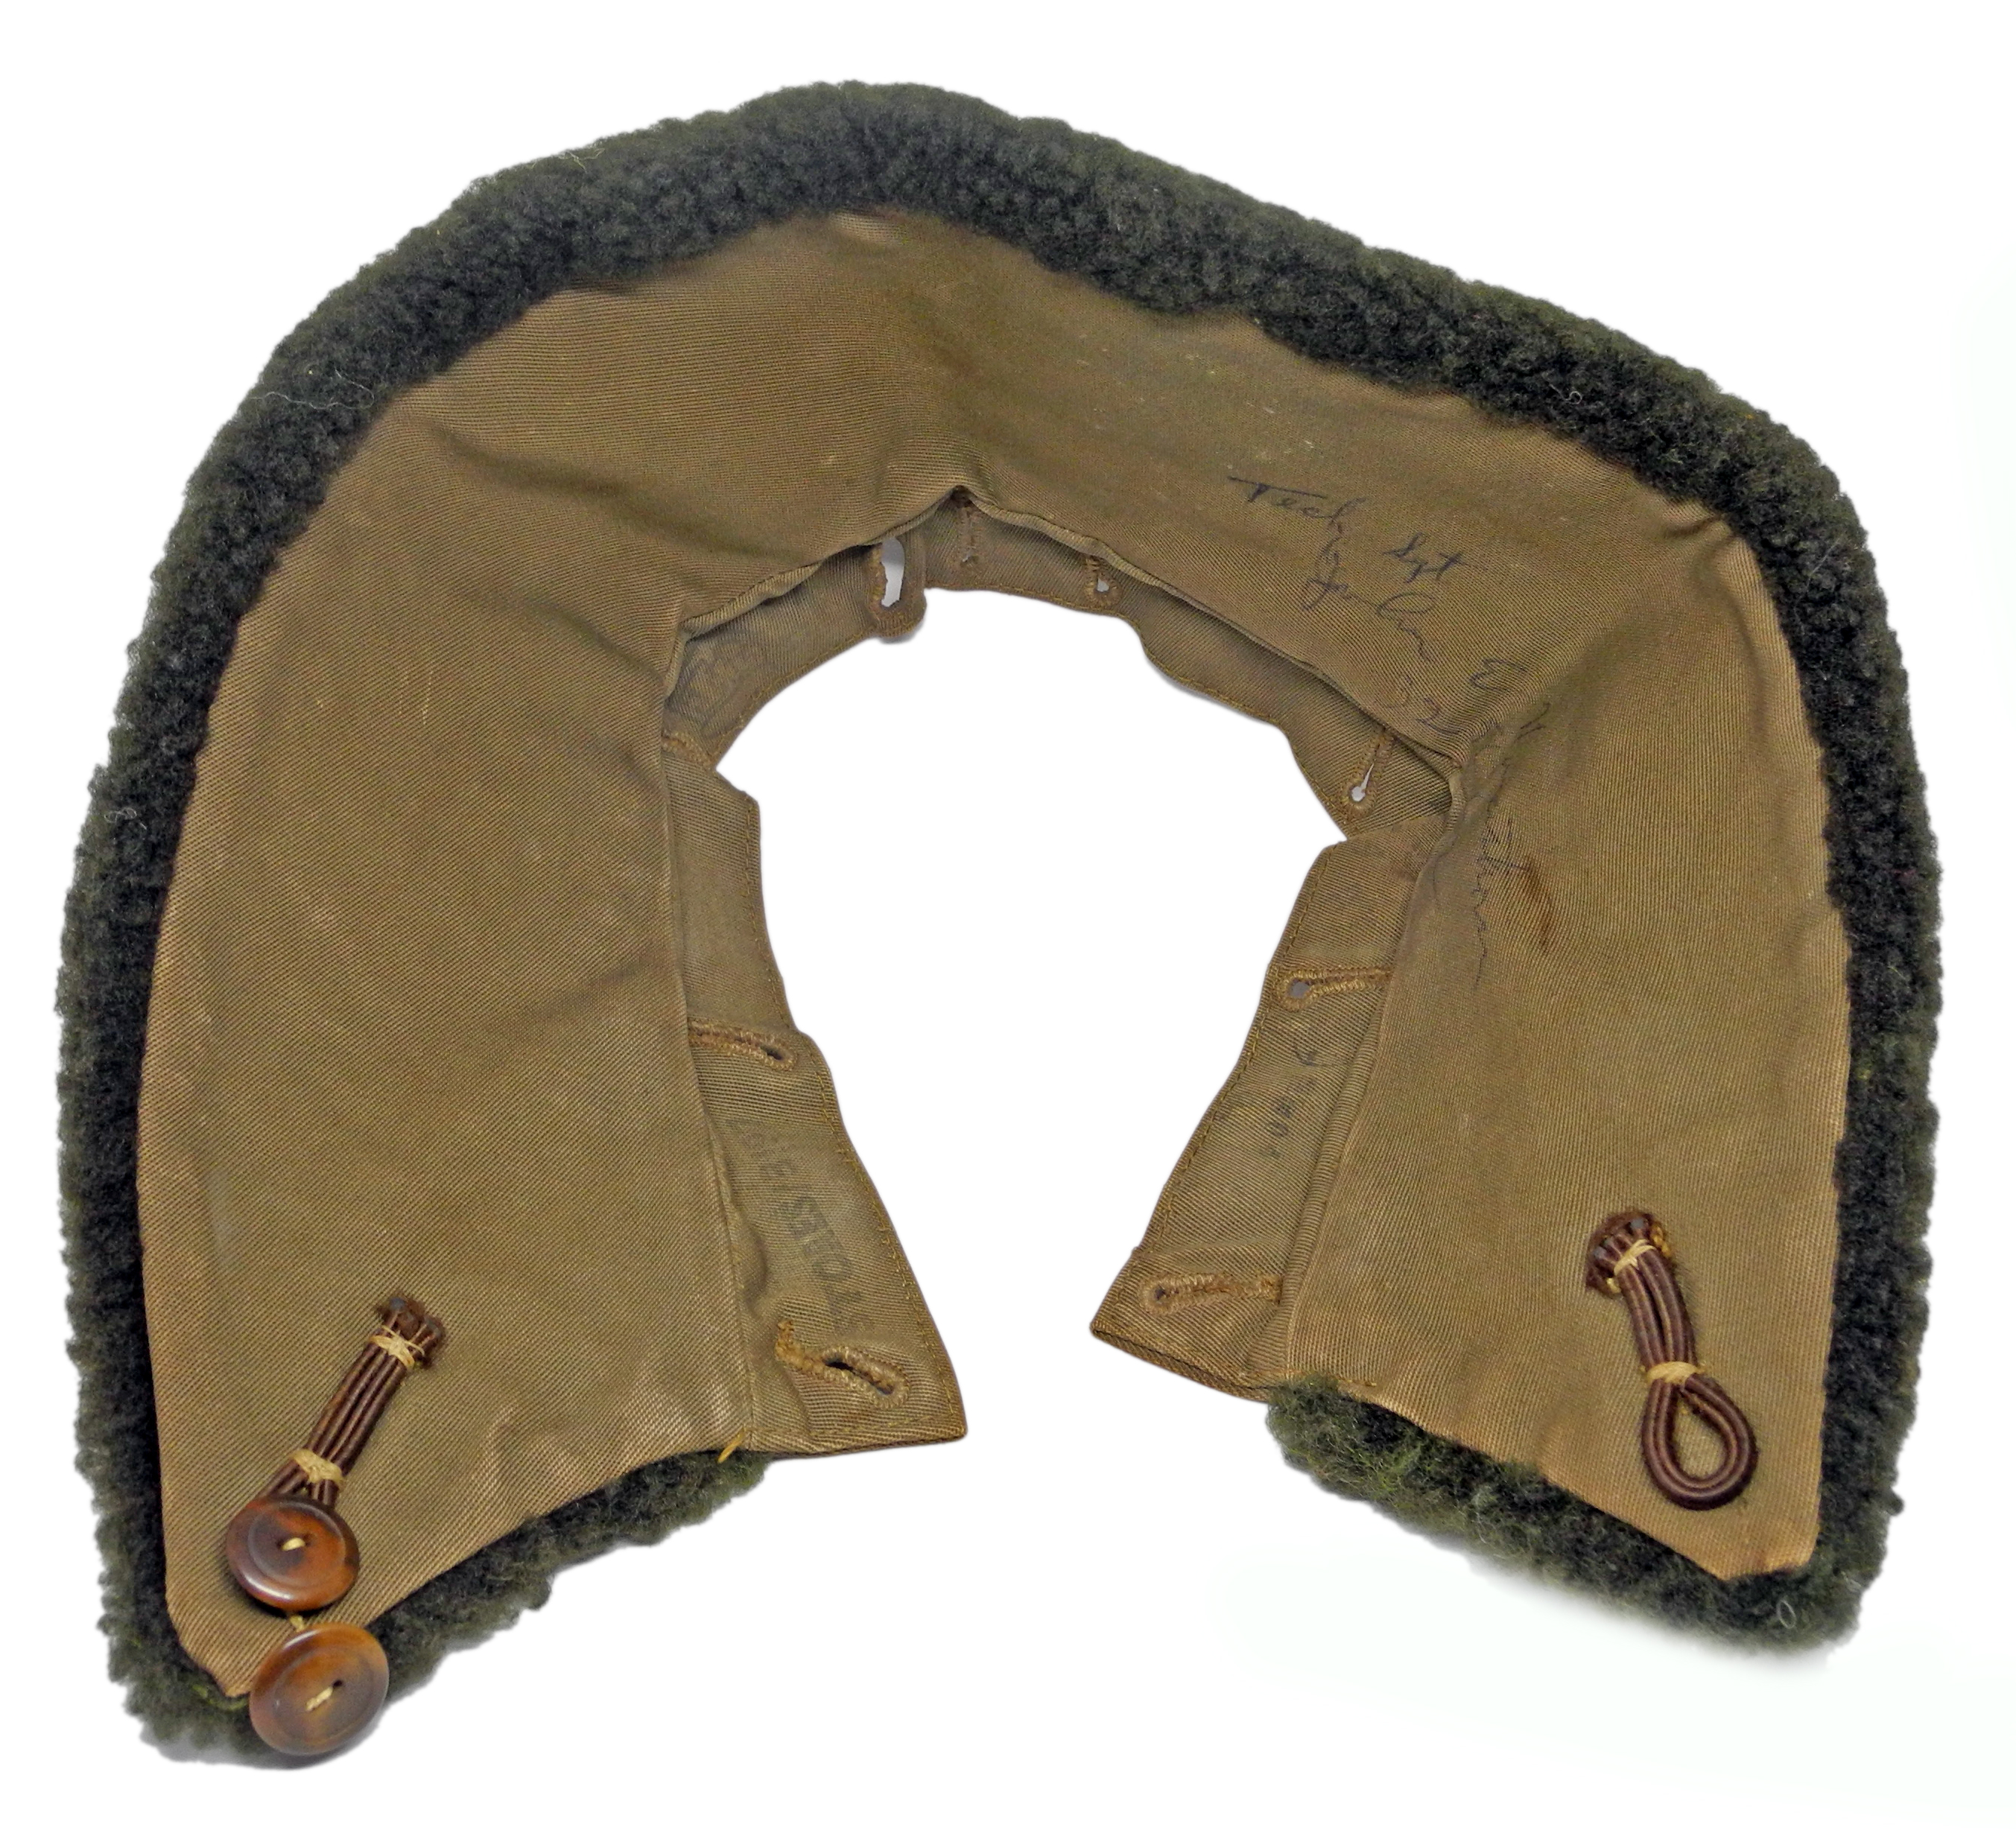 RAF 1940 pattern Sidcot collar